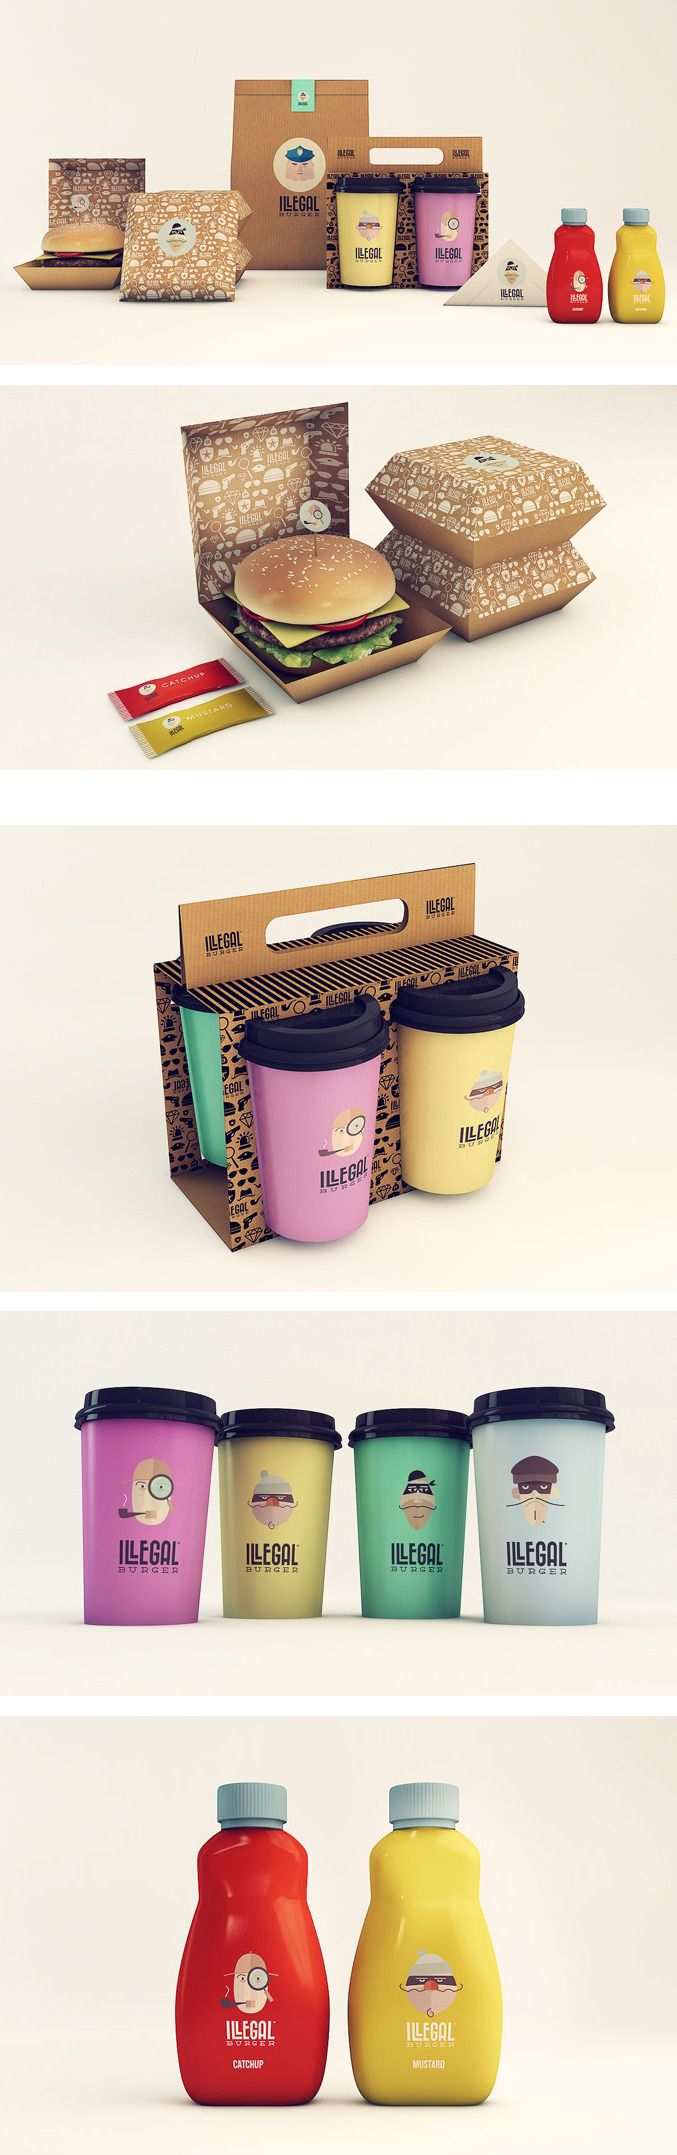 Burger #packaging #branding PD